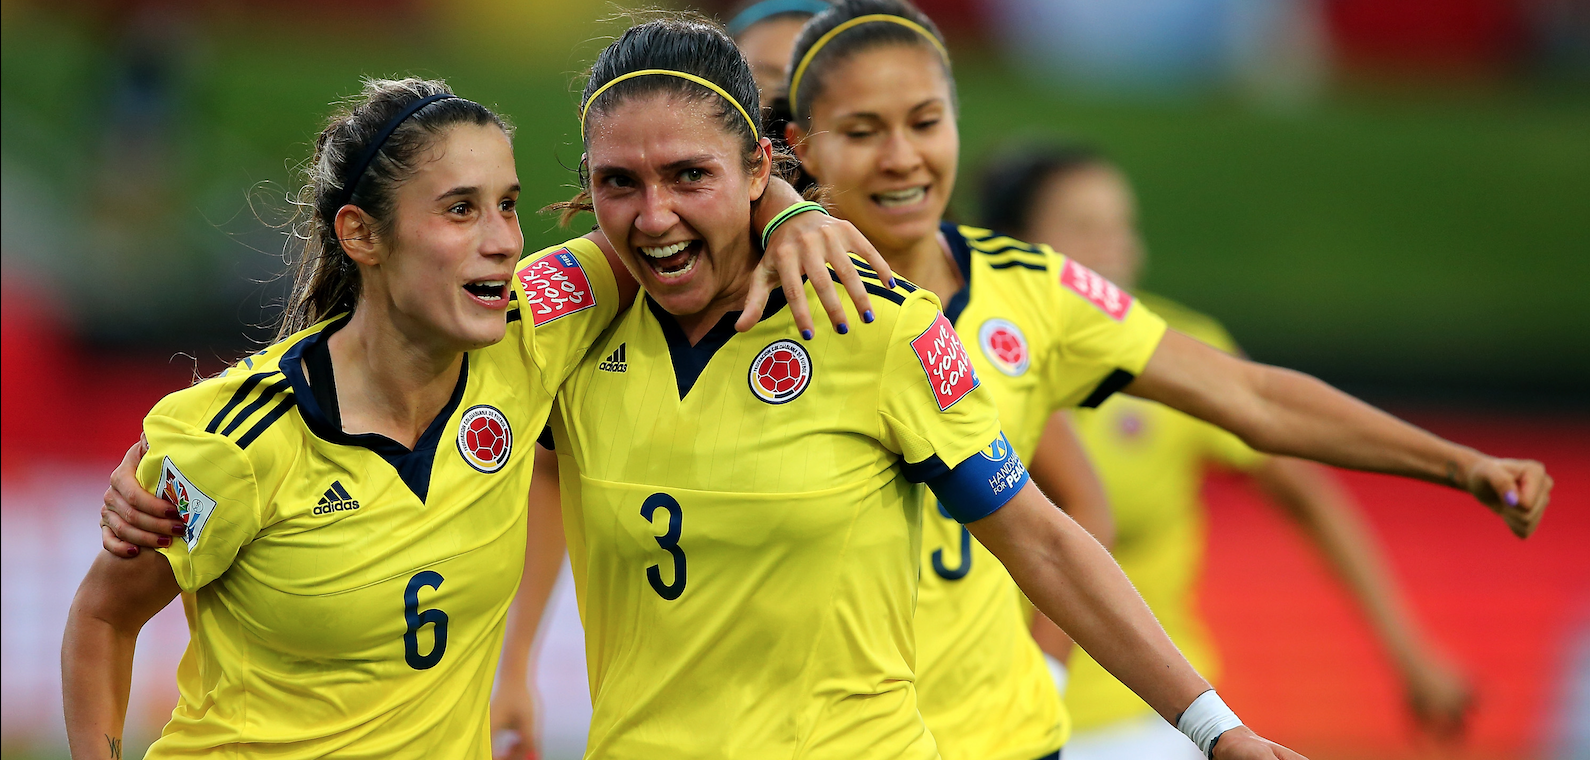 Natalia Gitan, captain of the Colombian national team, talks about women's football